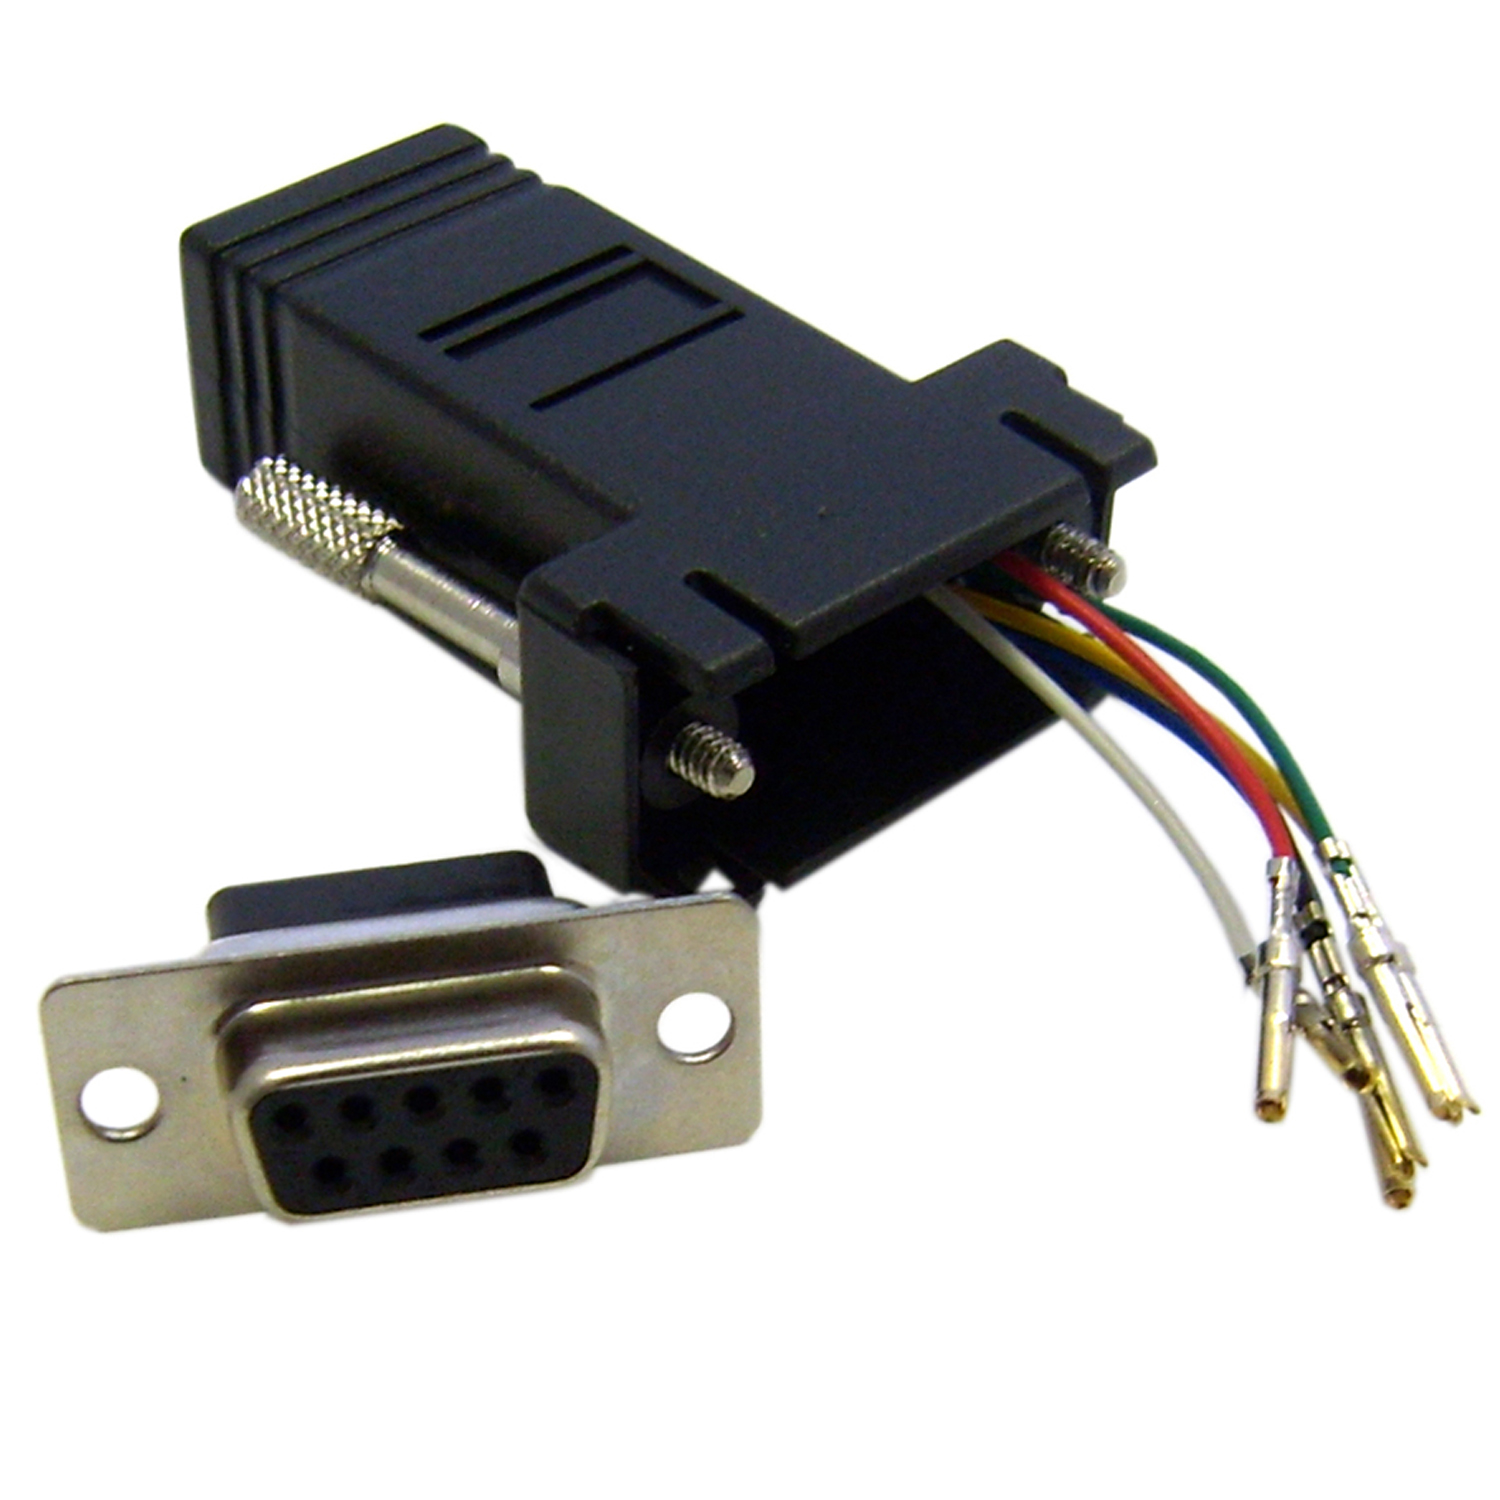 hight resolution of modular adapter black db9 female to rj12 jack